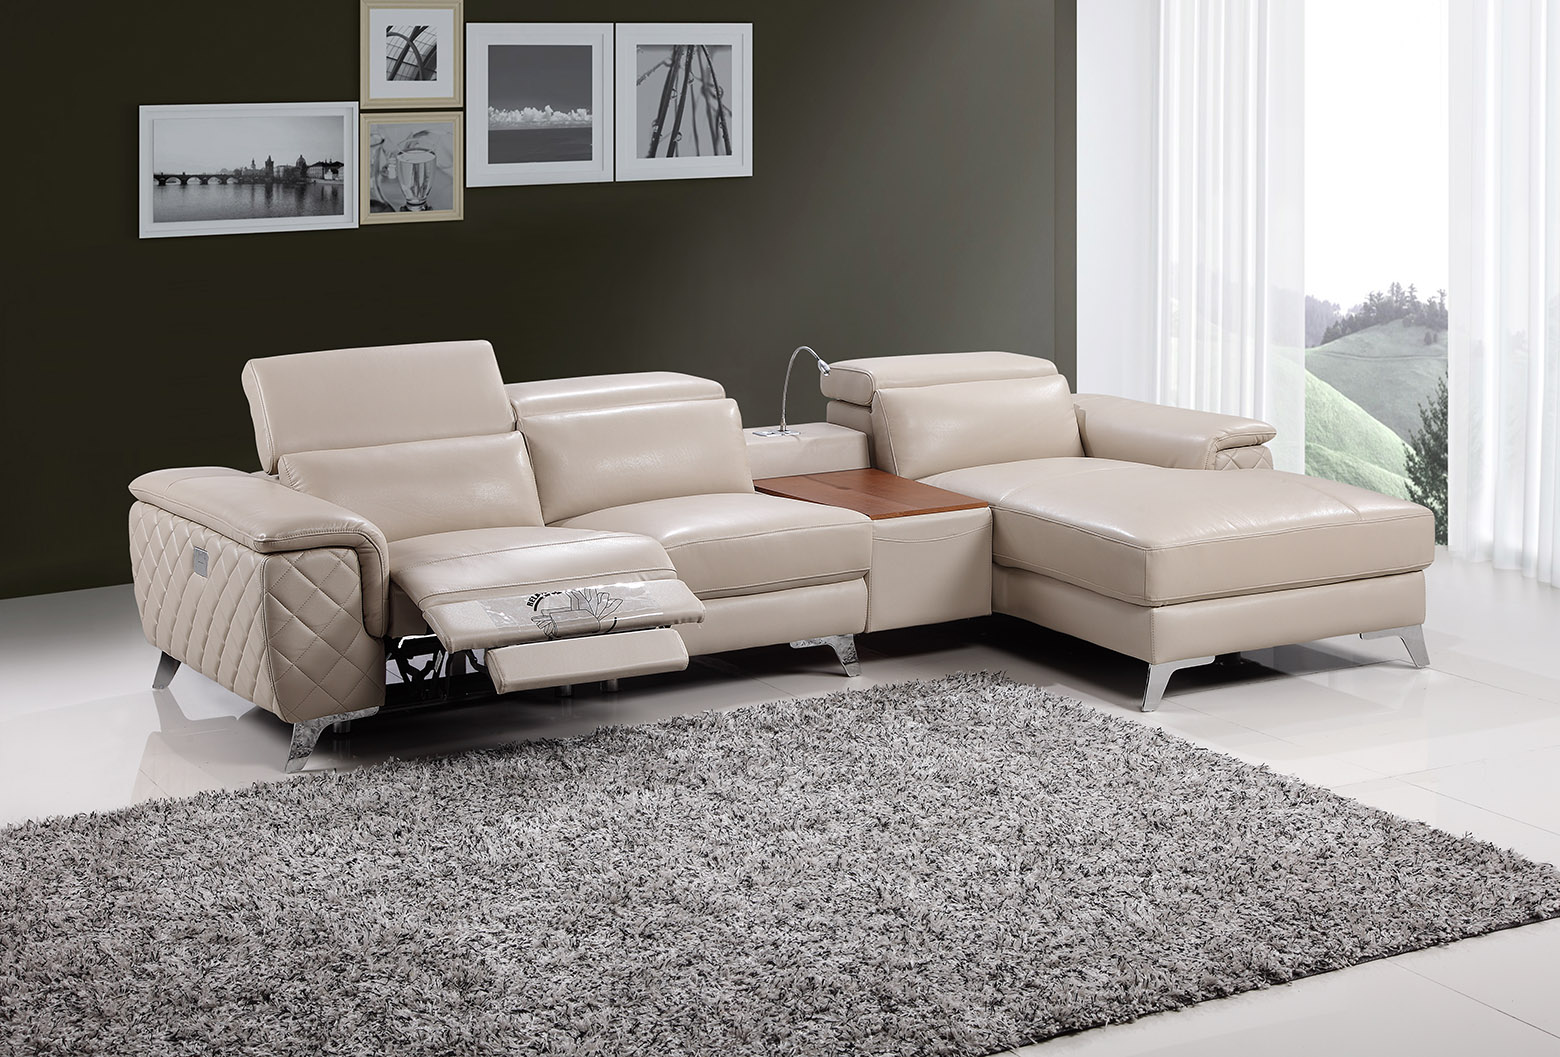 Recliner Lounge Fay 9159b Chaise Lounge With Electronic Recliner Fortune